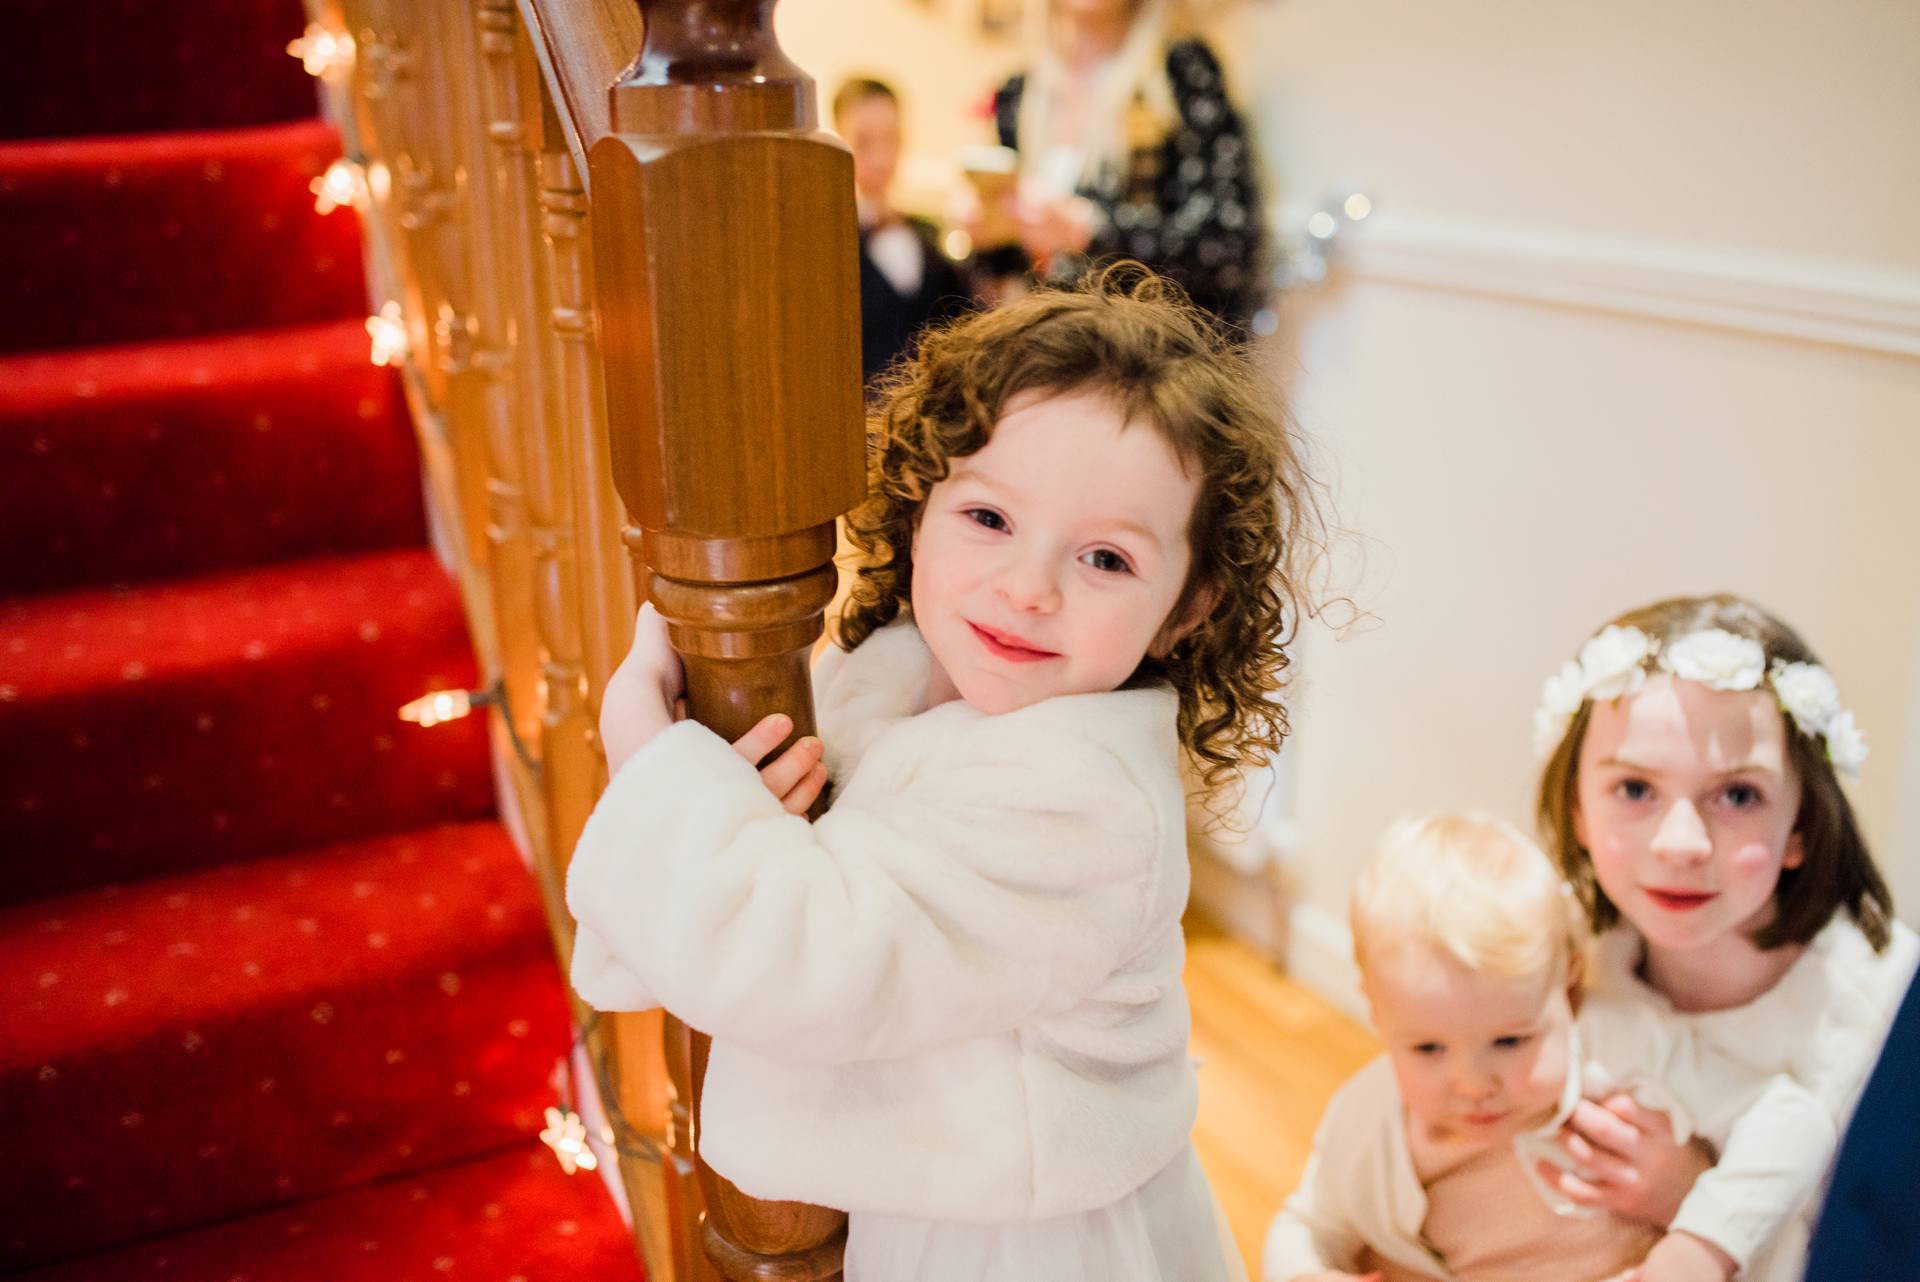 Flowergirl looks at camera while hanging onto stair railing